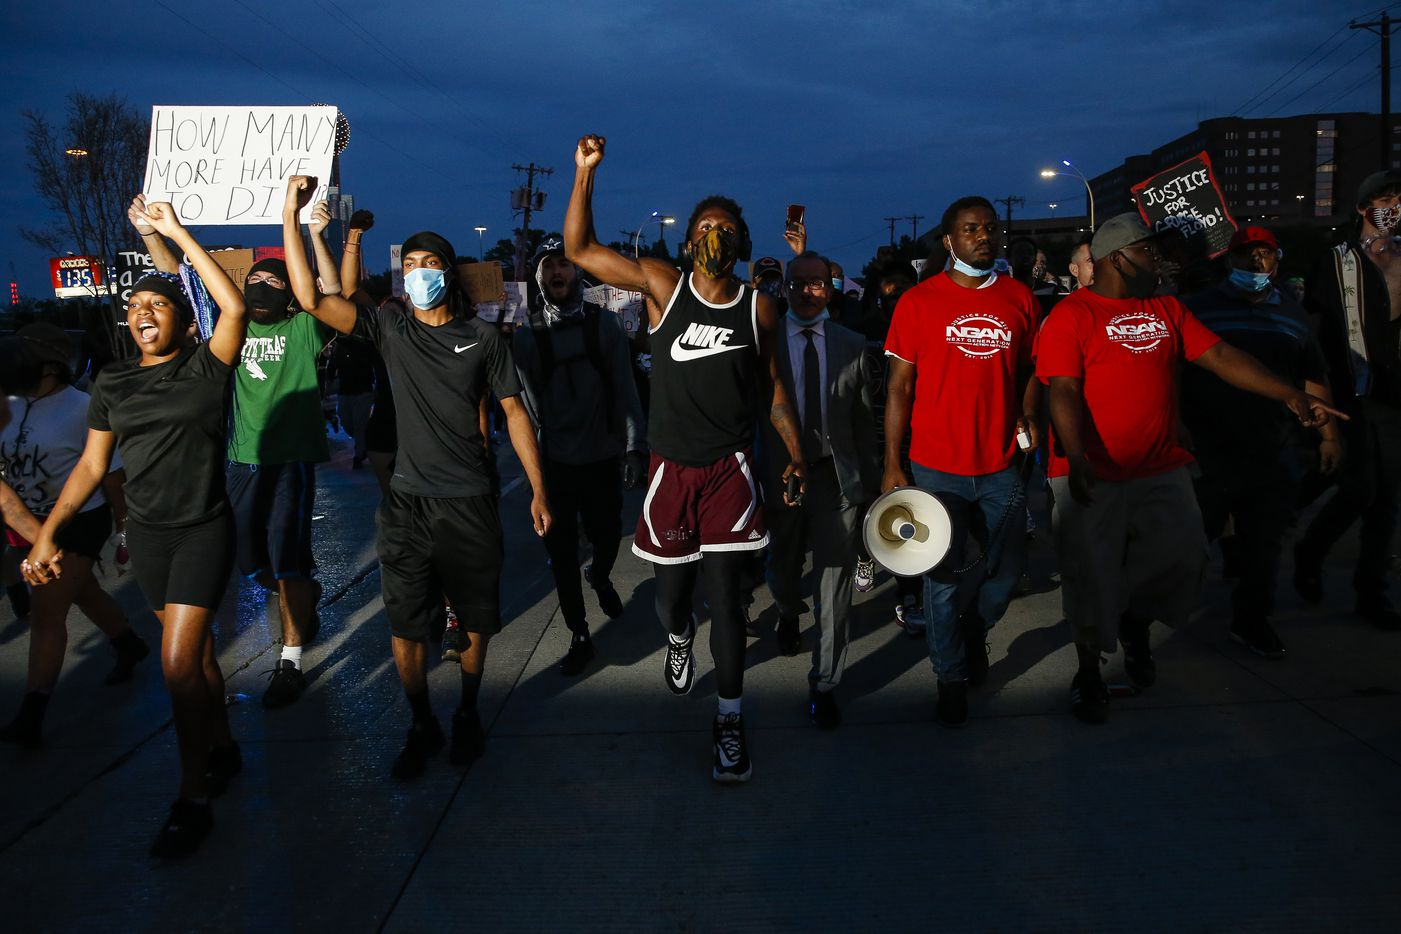 Protesters march to the Margaret Hunt Hill Bridge as they demonstrate against police brutality on Monday, June 1, 2020, in Dallas. Later on, the hundreds of protesters were surrounded and detained by police on the bridge.